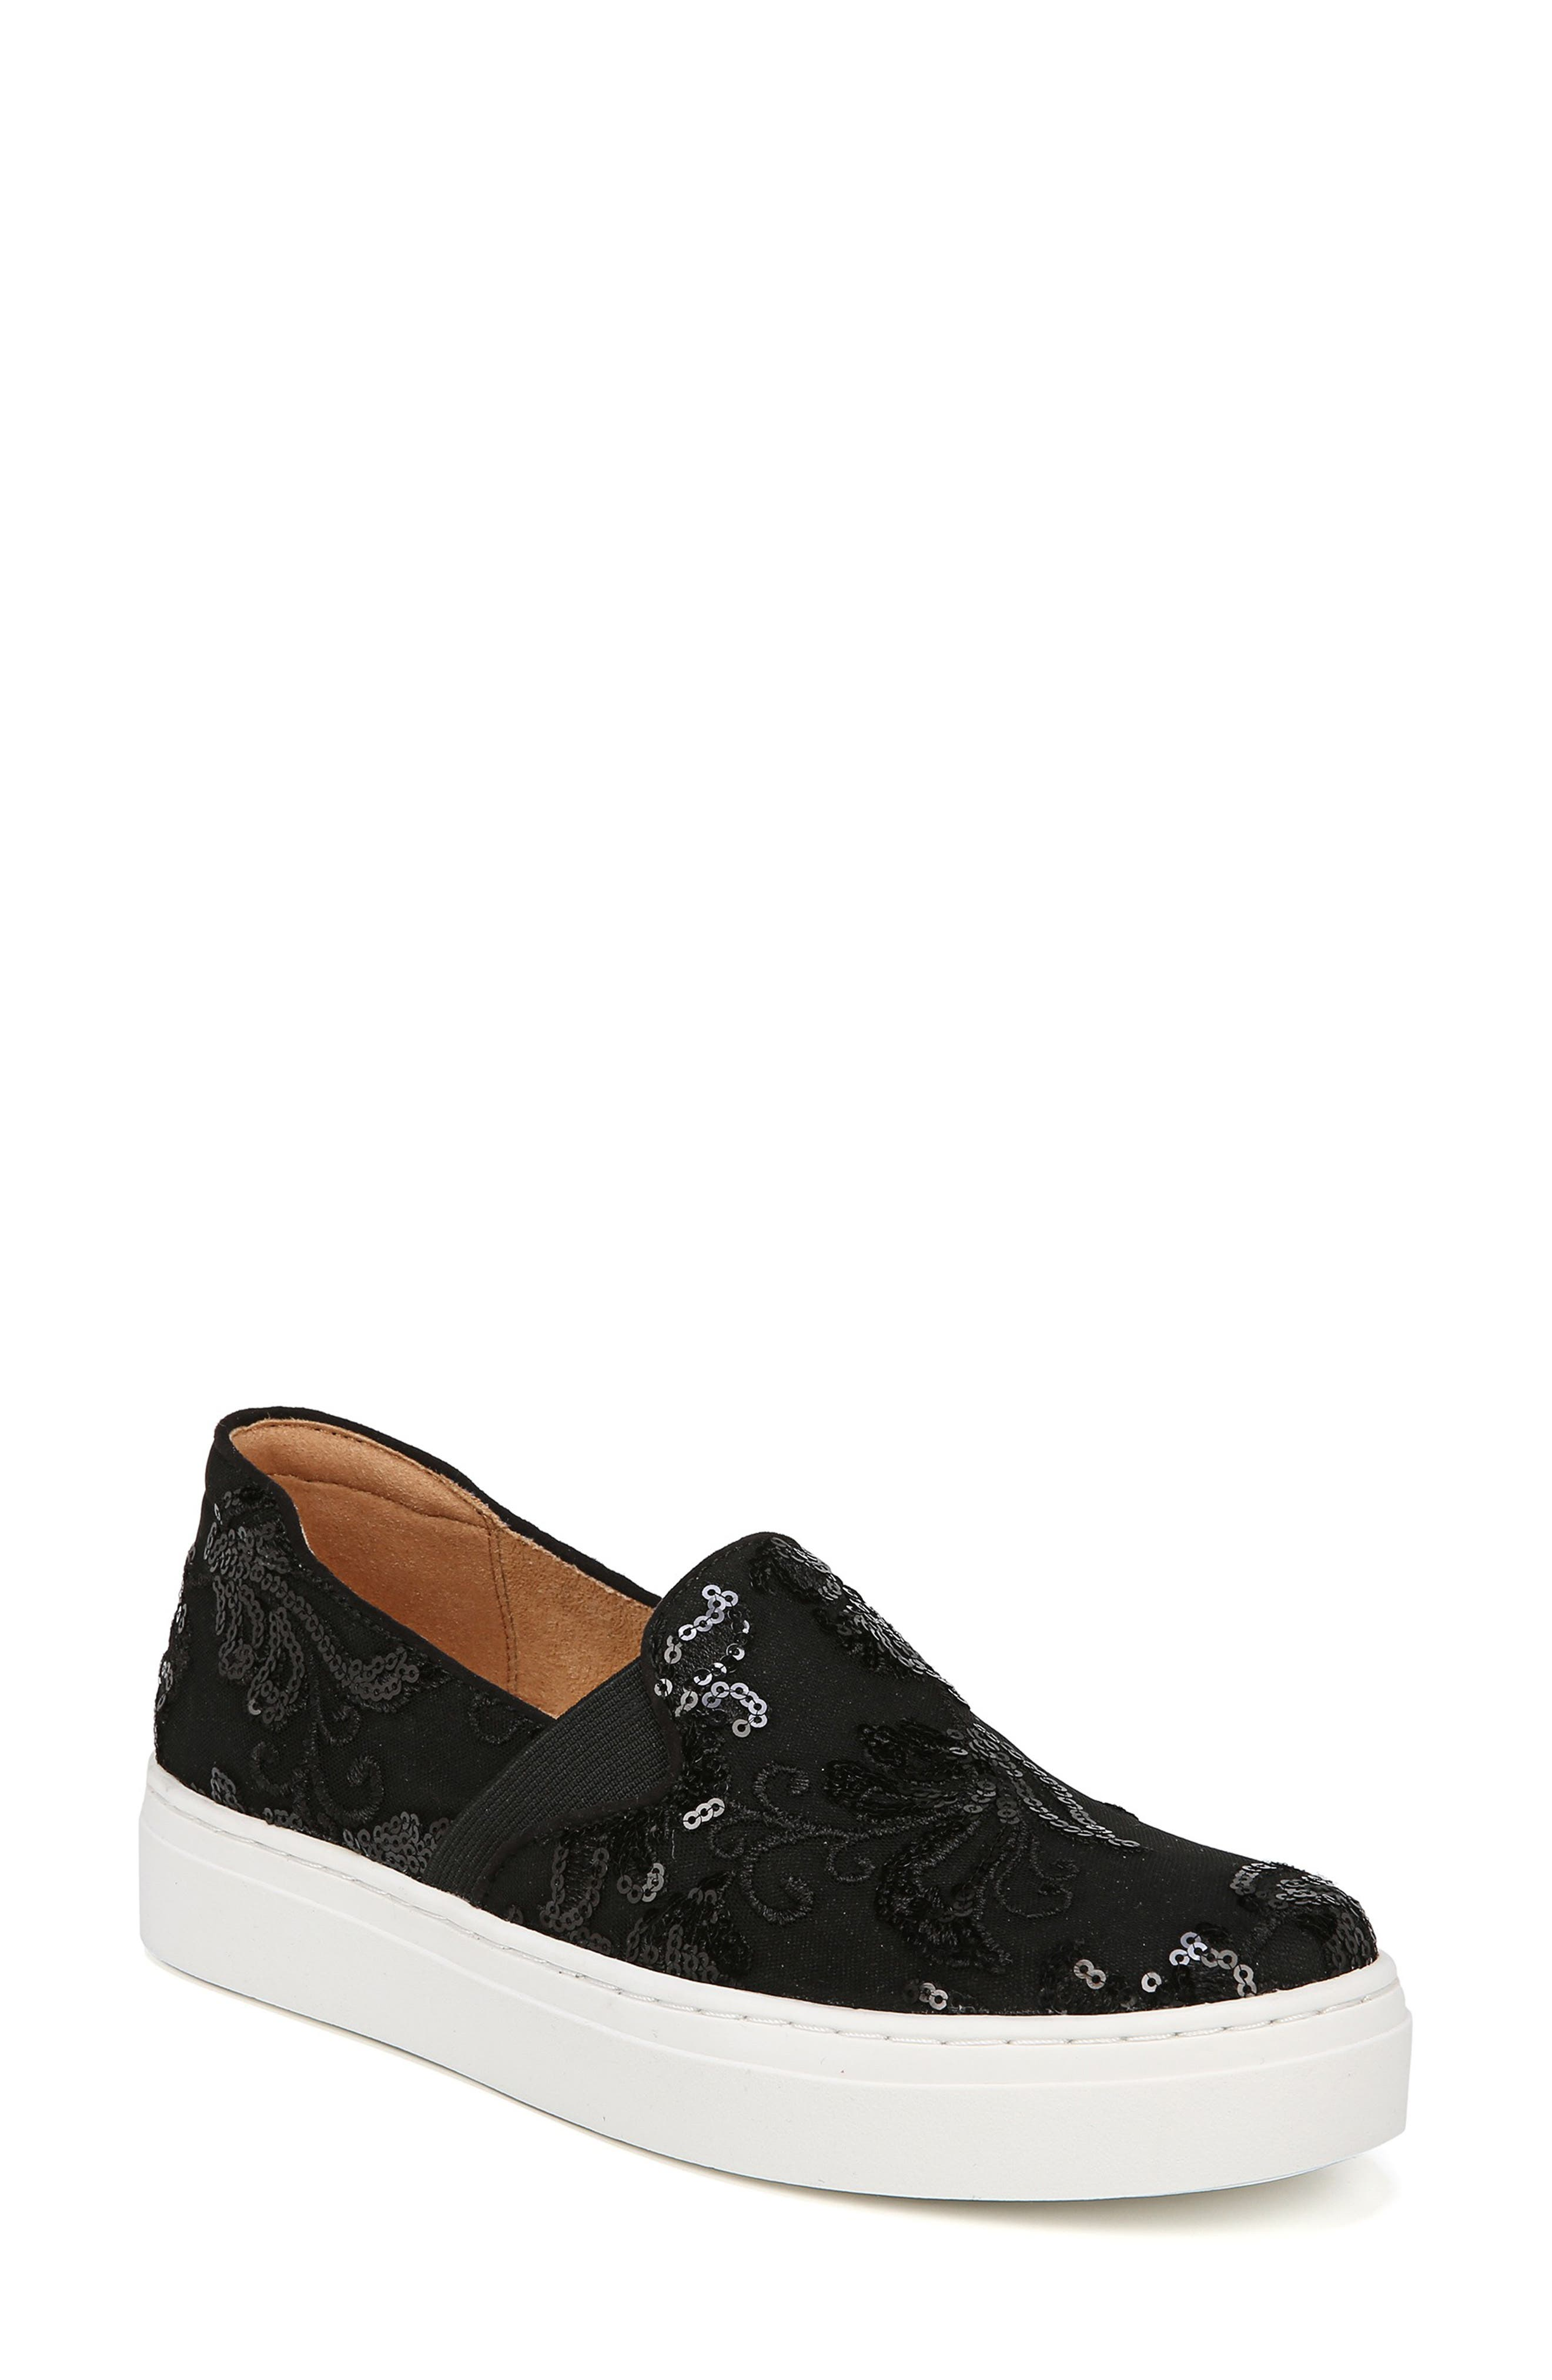 NATURALIZER, Carly Slip-On Sneaker, Main thumbnail 1, color, BLACK EMBROIDERED LACE